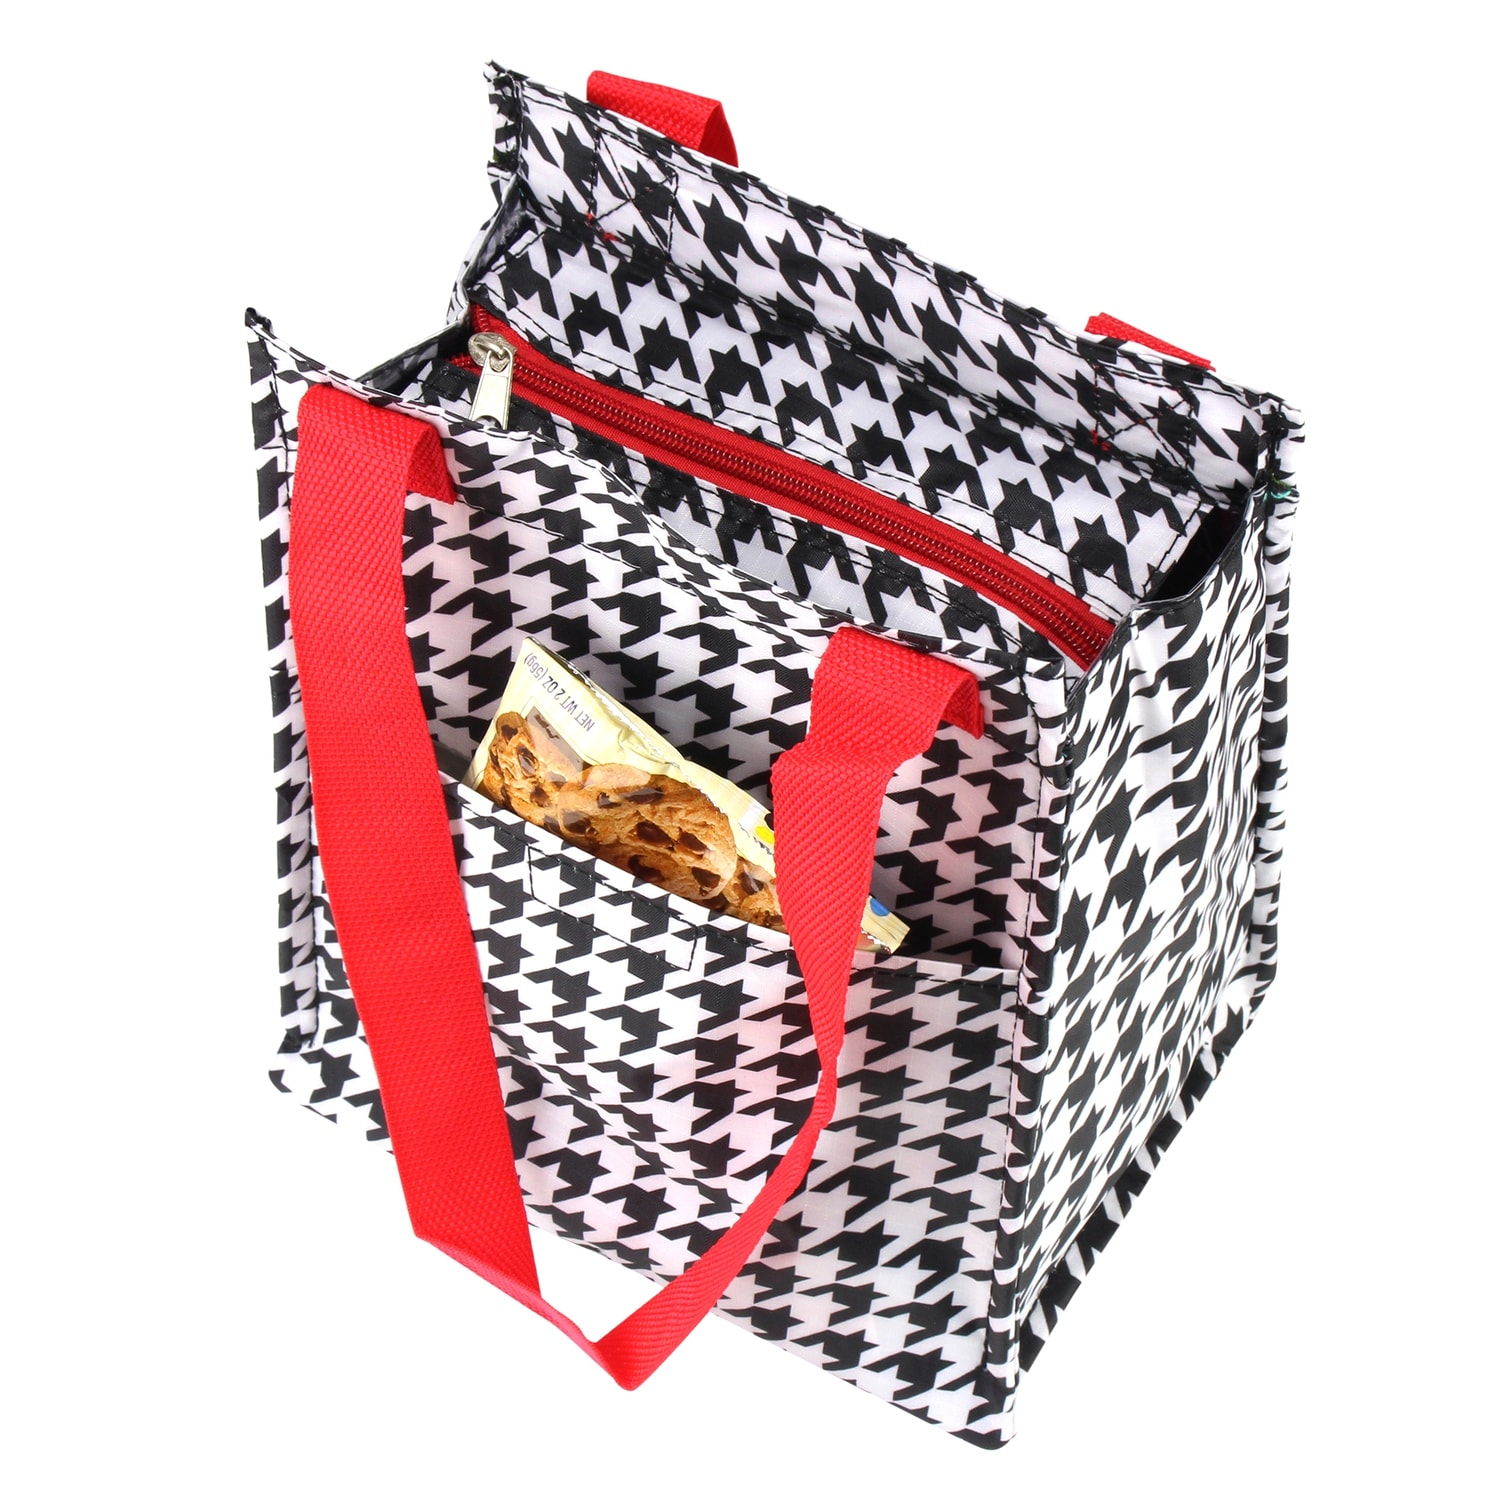 52a40b1d44 Shop Zodaca Red Houndstooth Insulated Lunch Bag Women Tote Cooler Picnic  Travel Food Box Zipper Carry Bags for Camping - Free Shipping On Orders  Over  45 ...